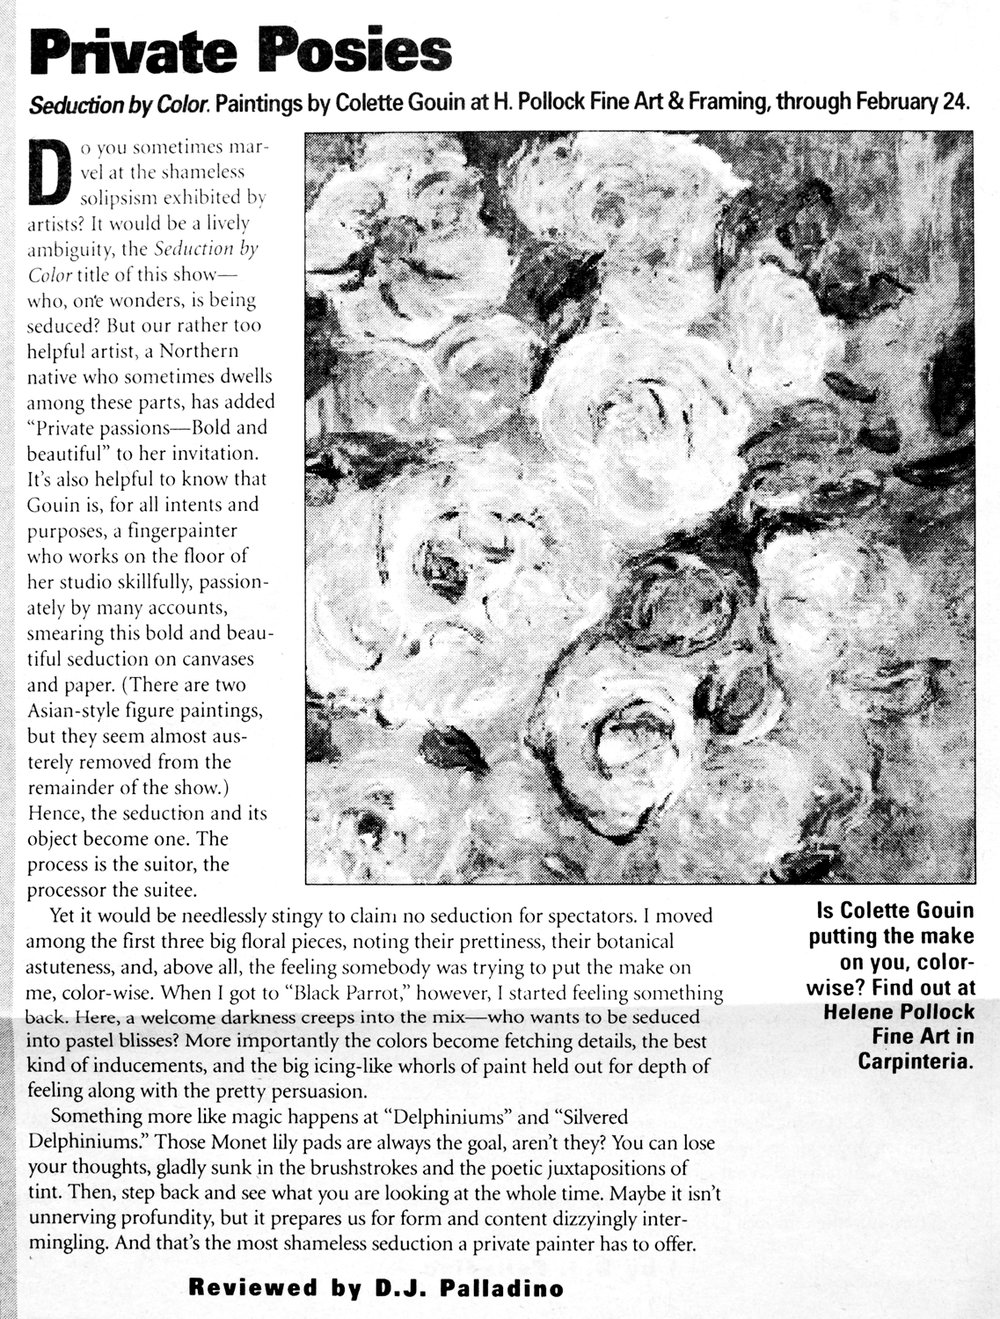 2002 The Independent review